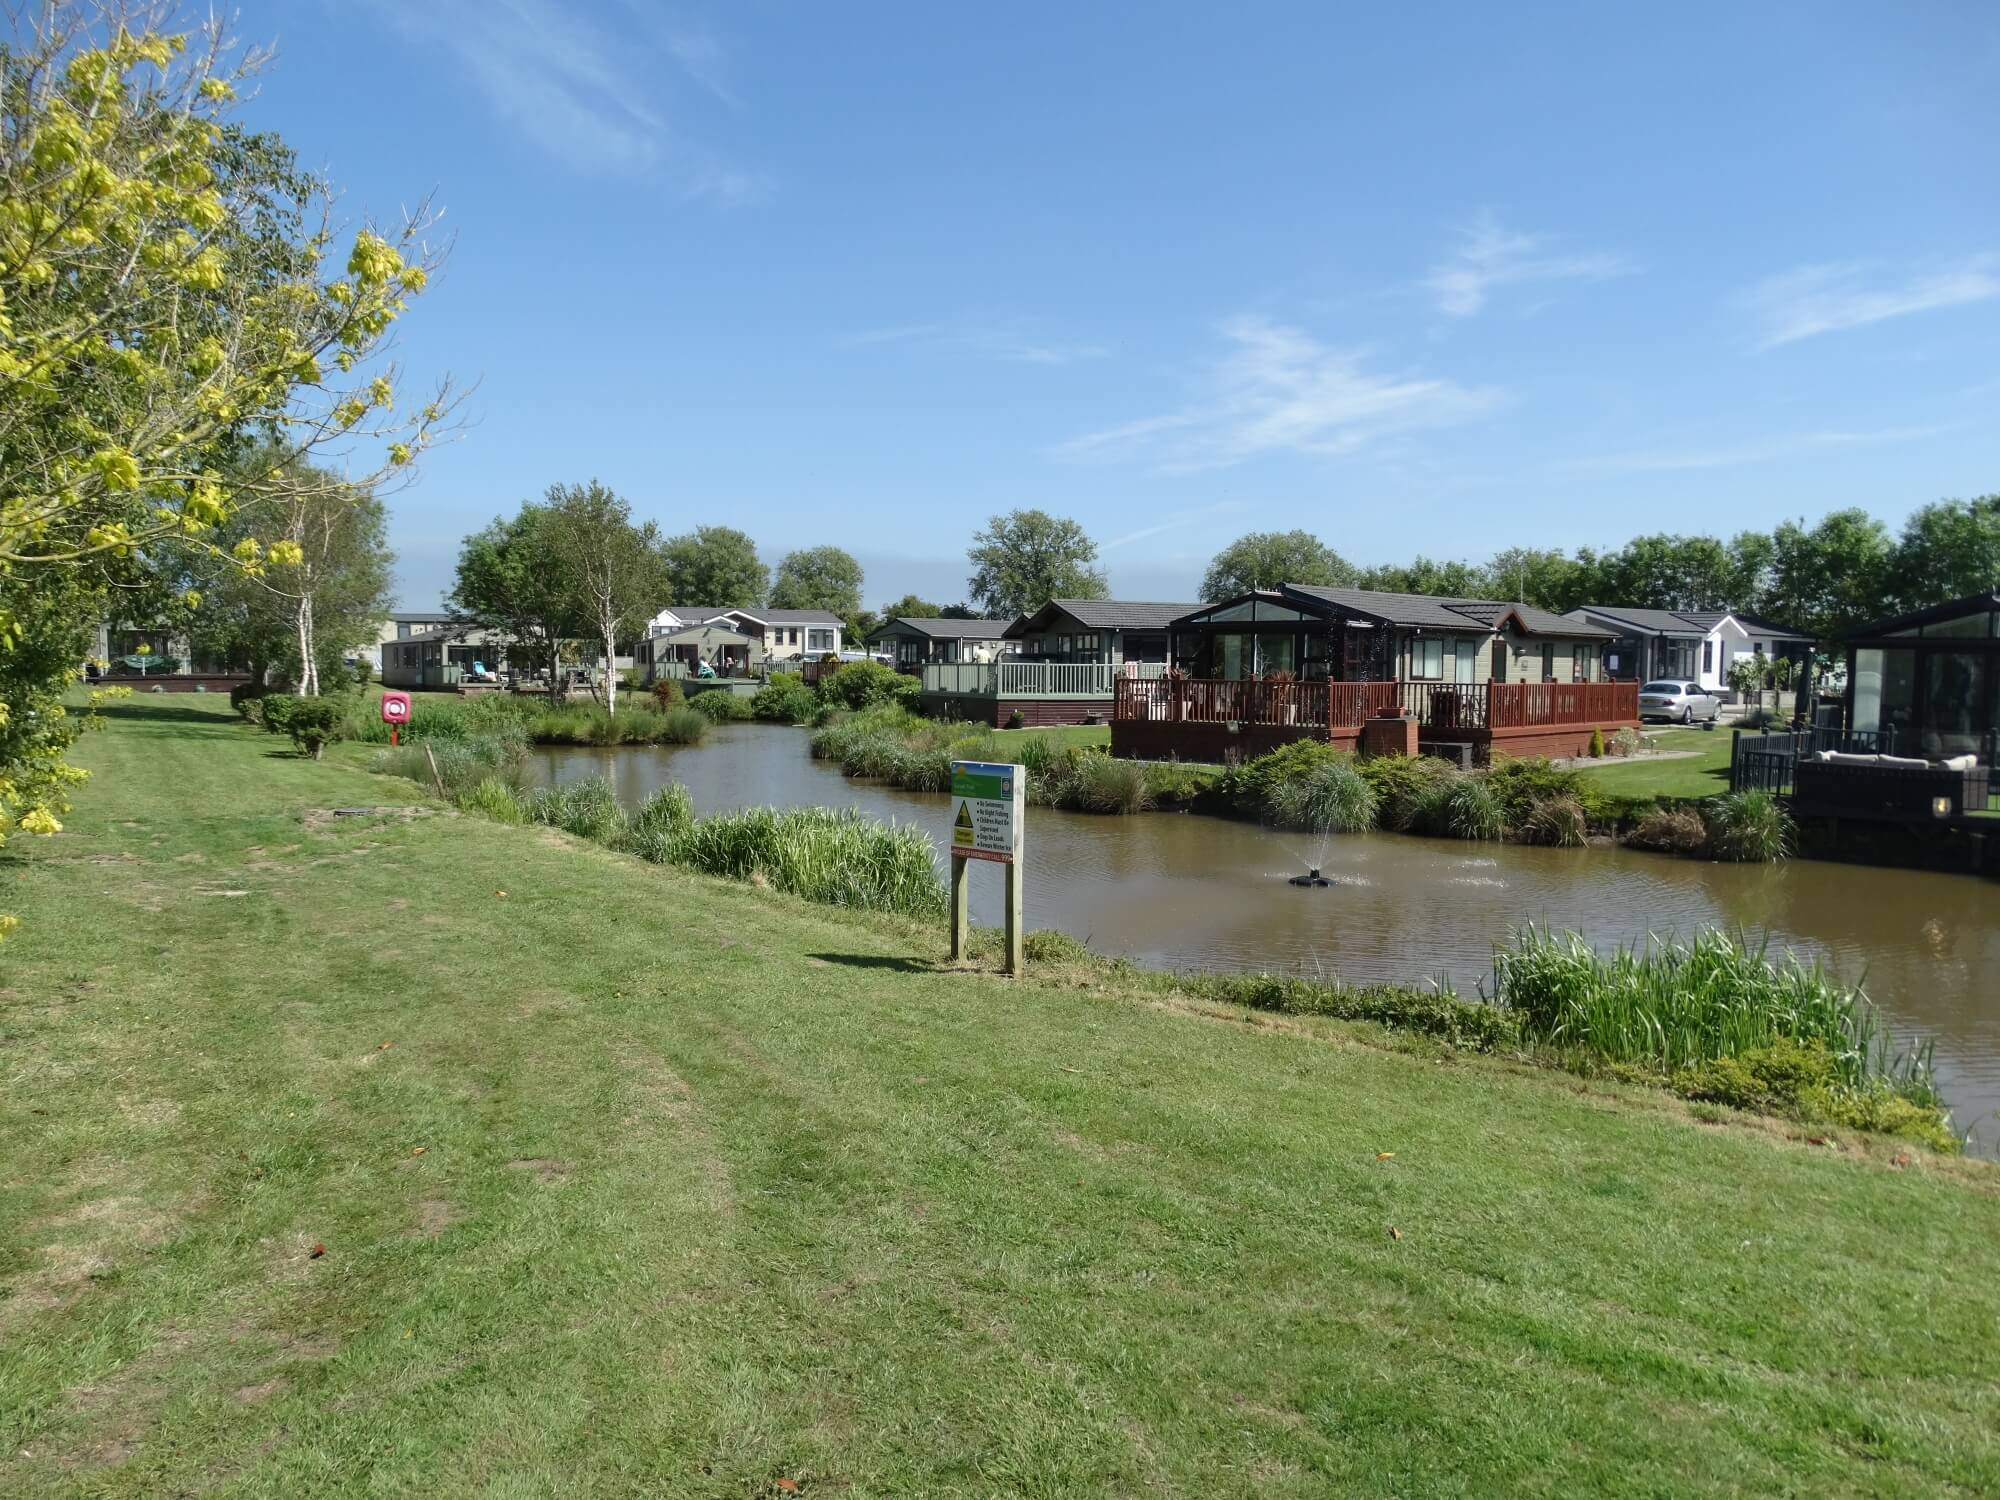 Residential Lodges Views